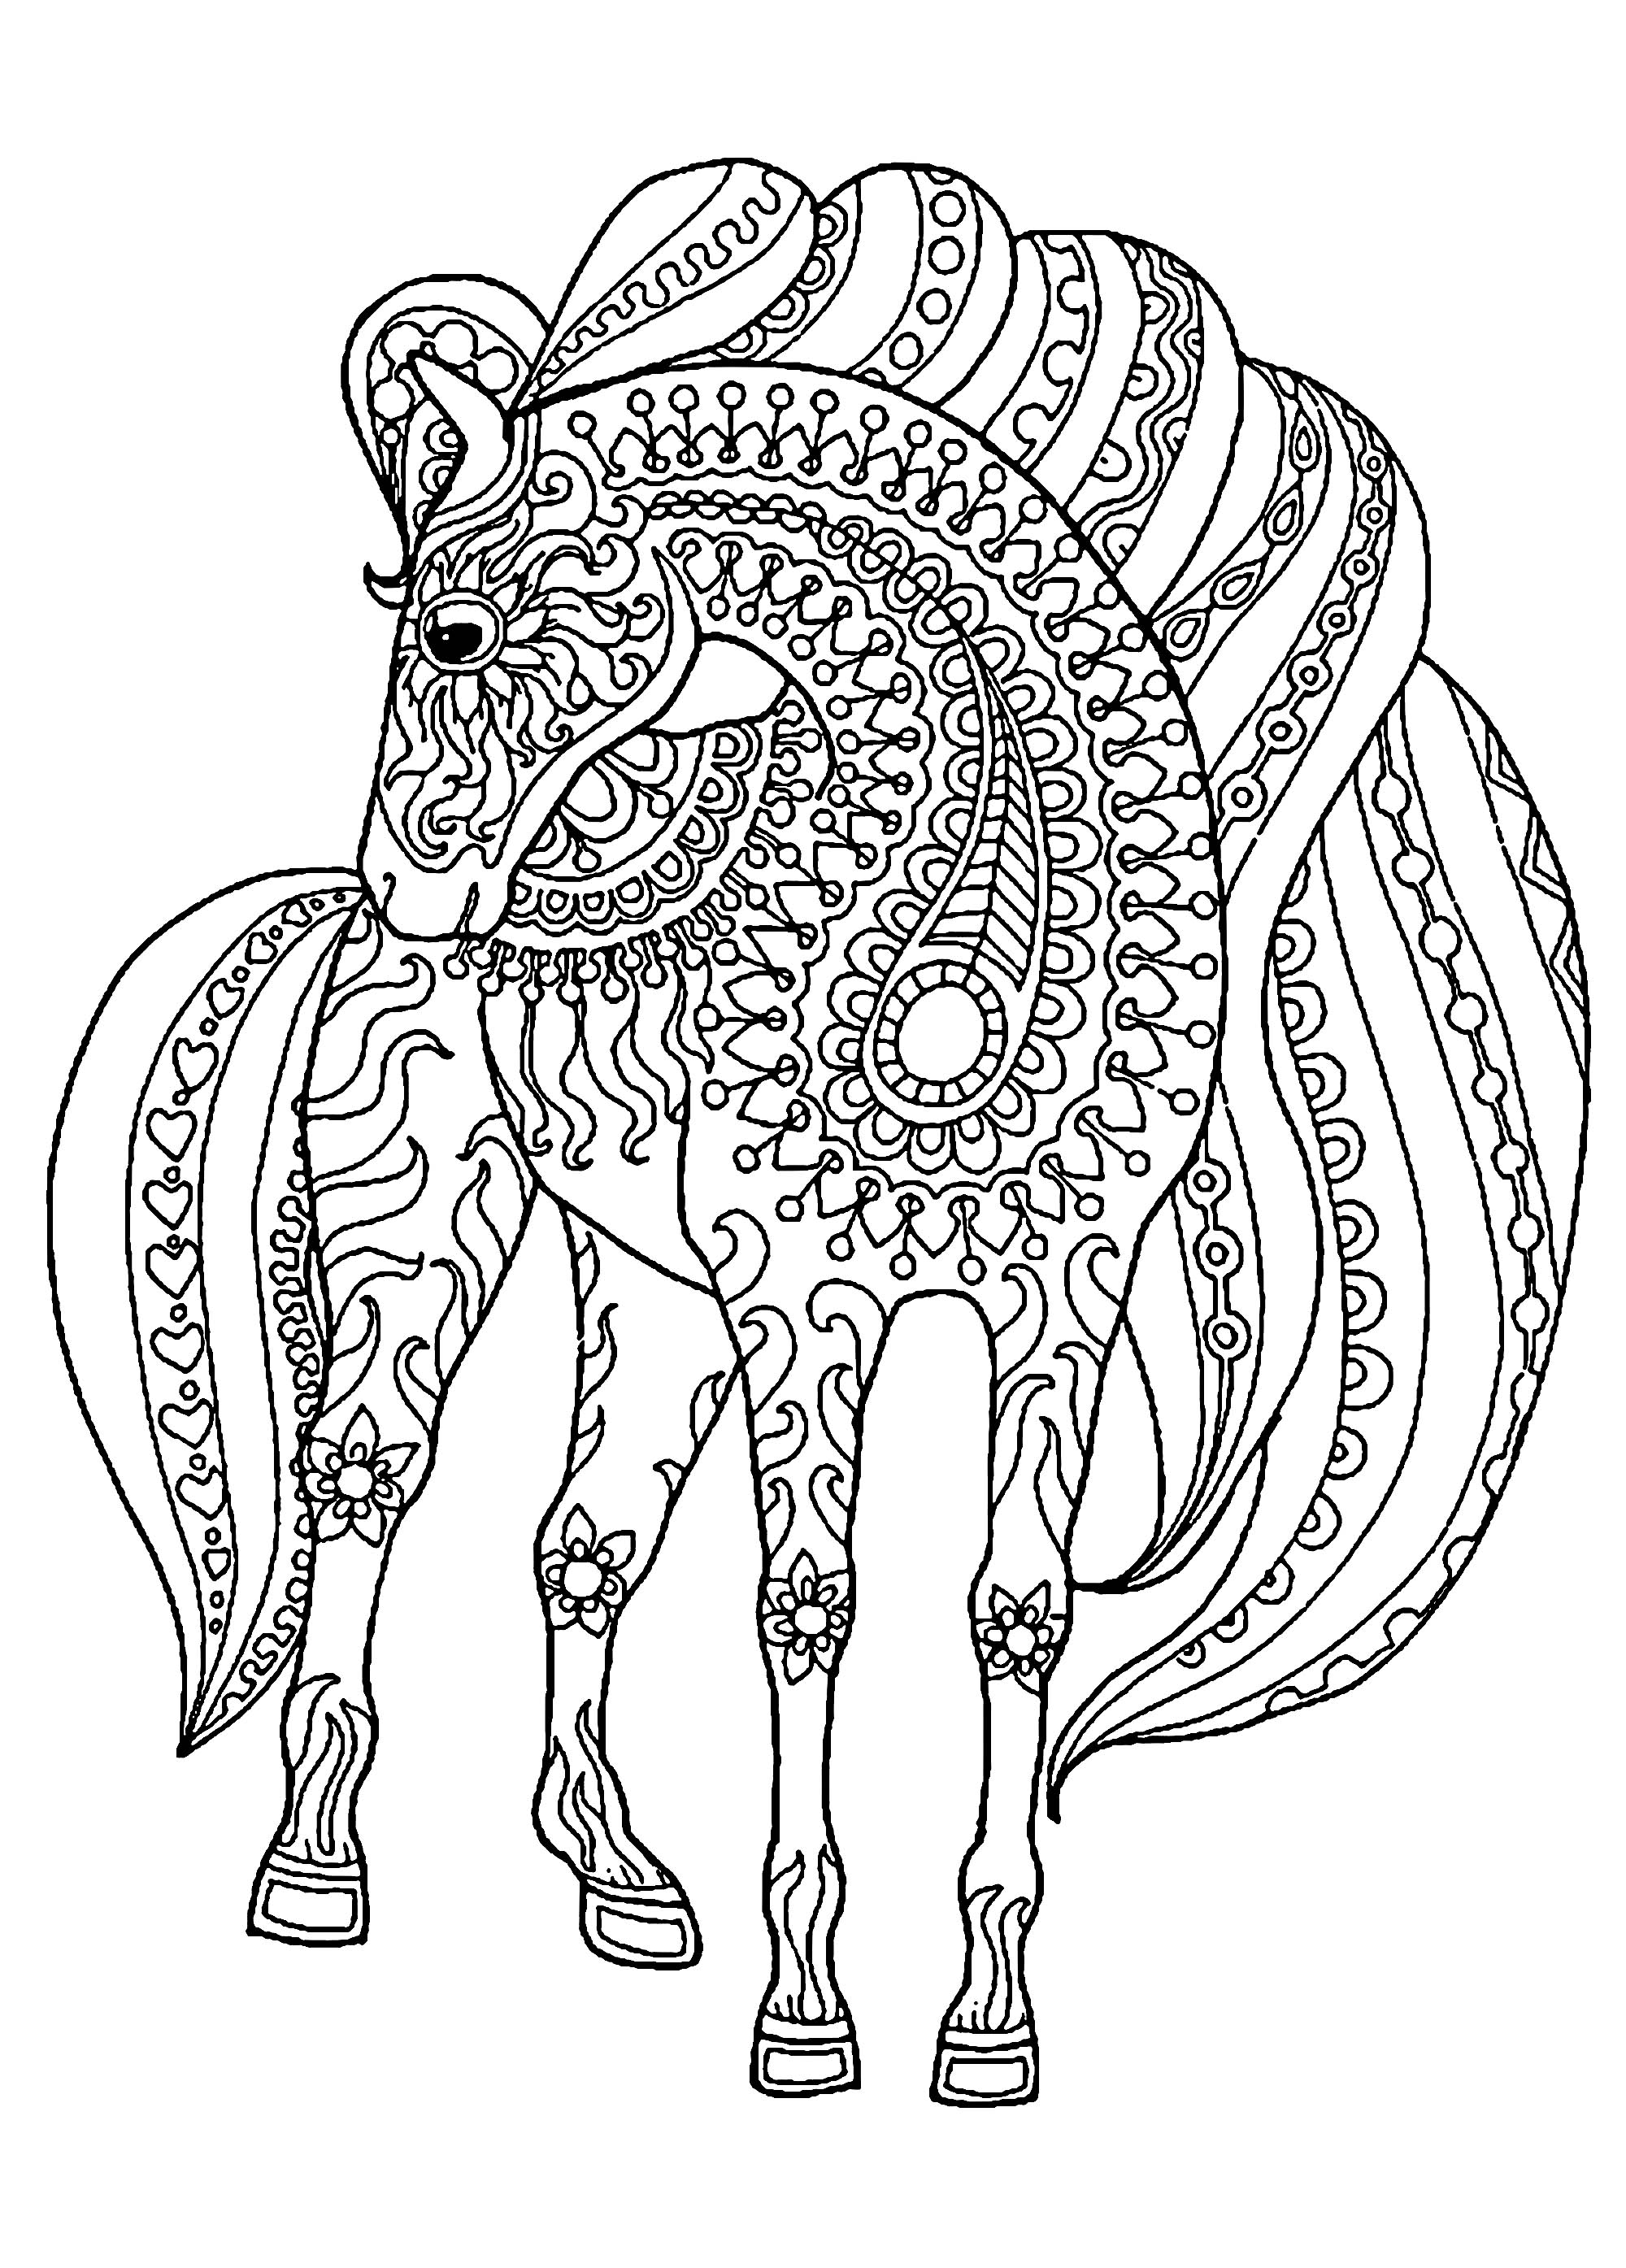 coloring pictures of horse zentangle horse coloring pages at getcoloringscom free horse coloring pictures of